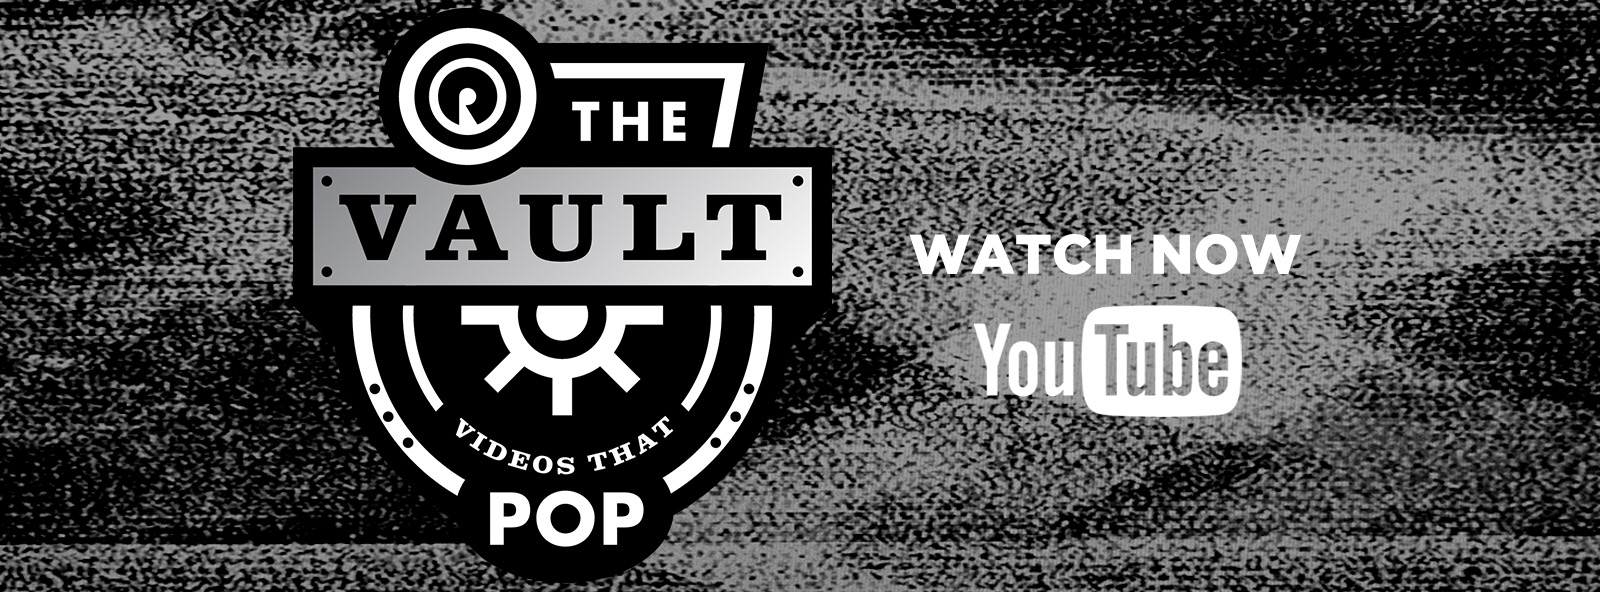 Introducing The Vault : Videos That Pop